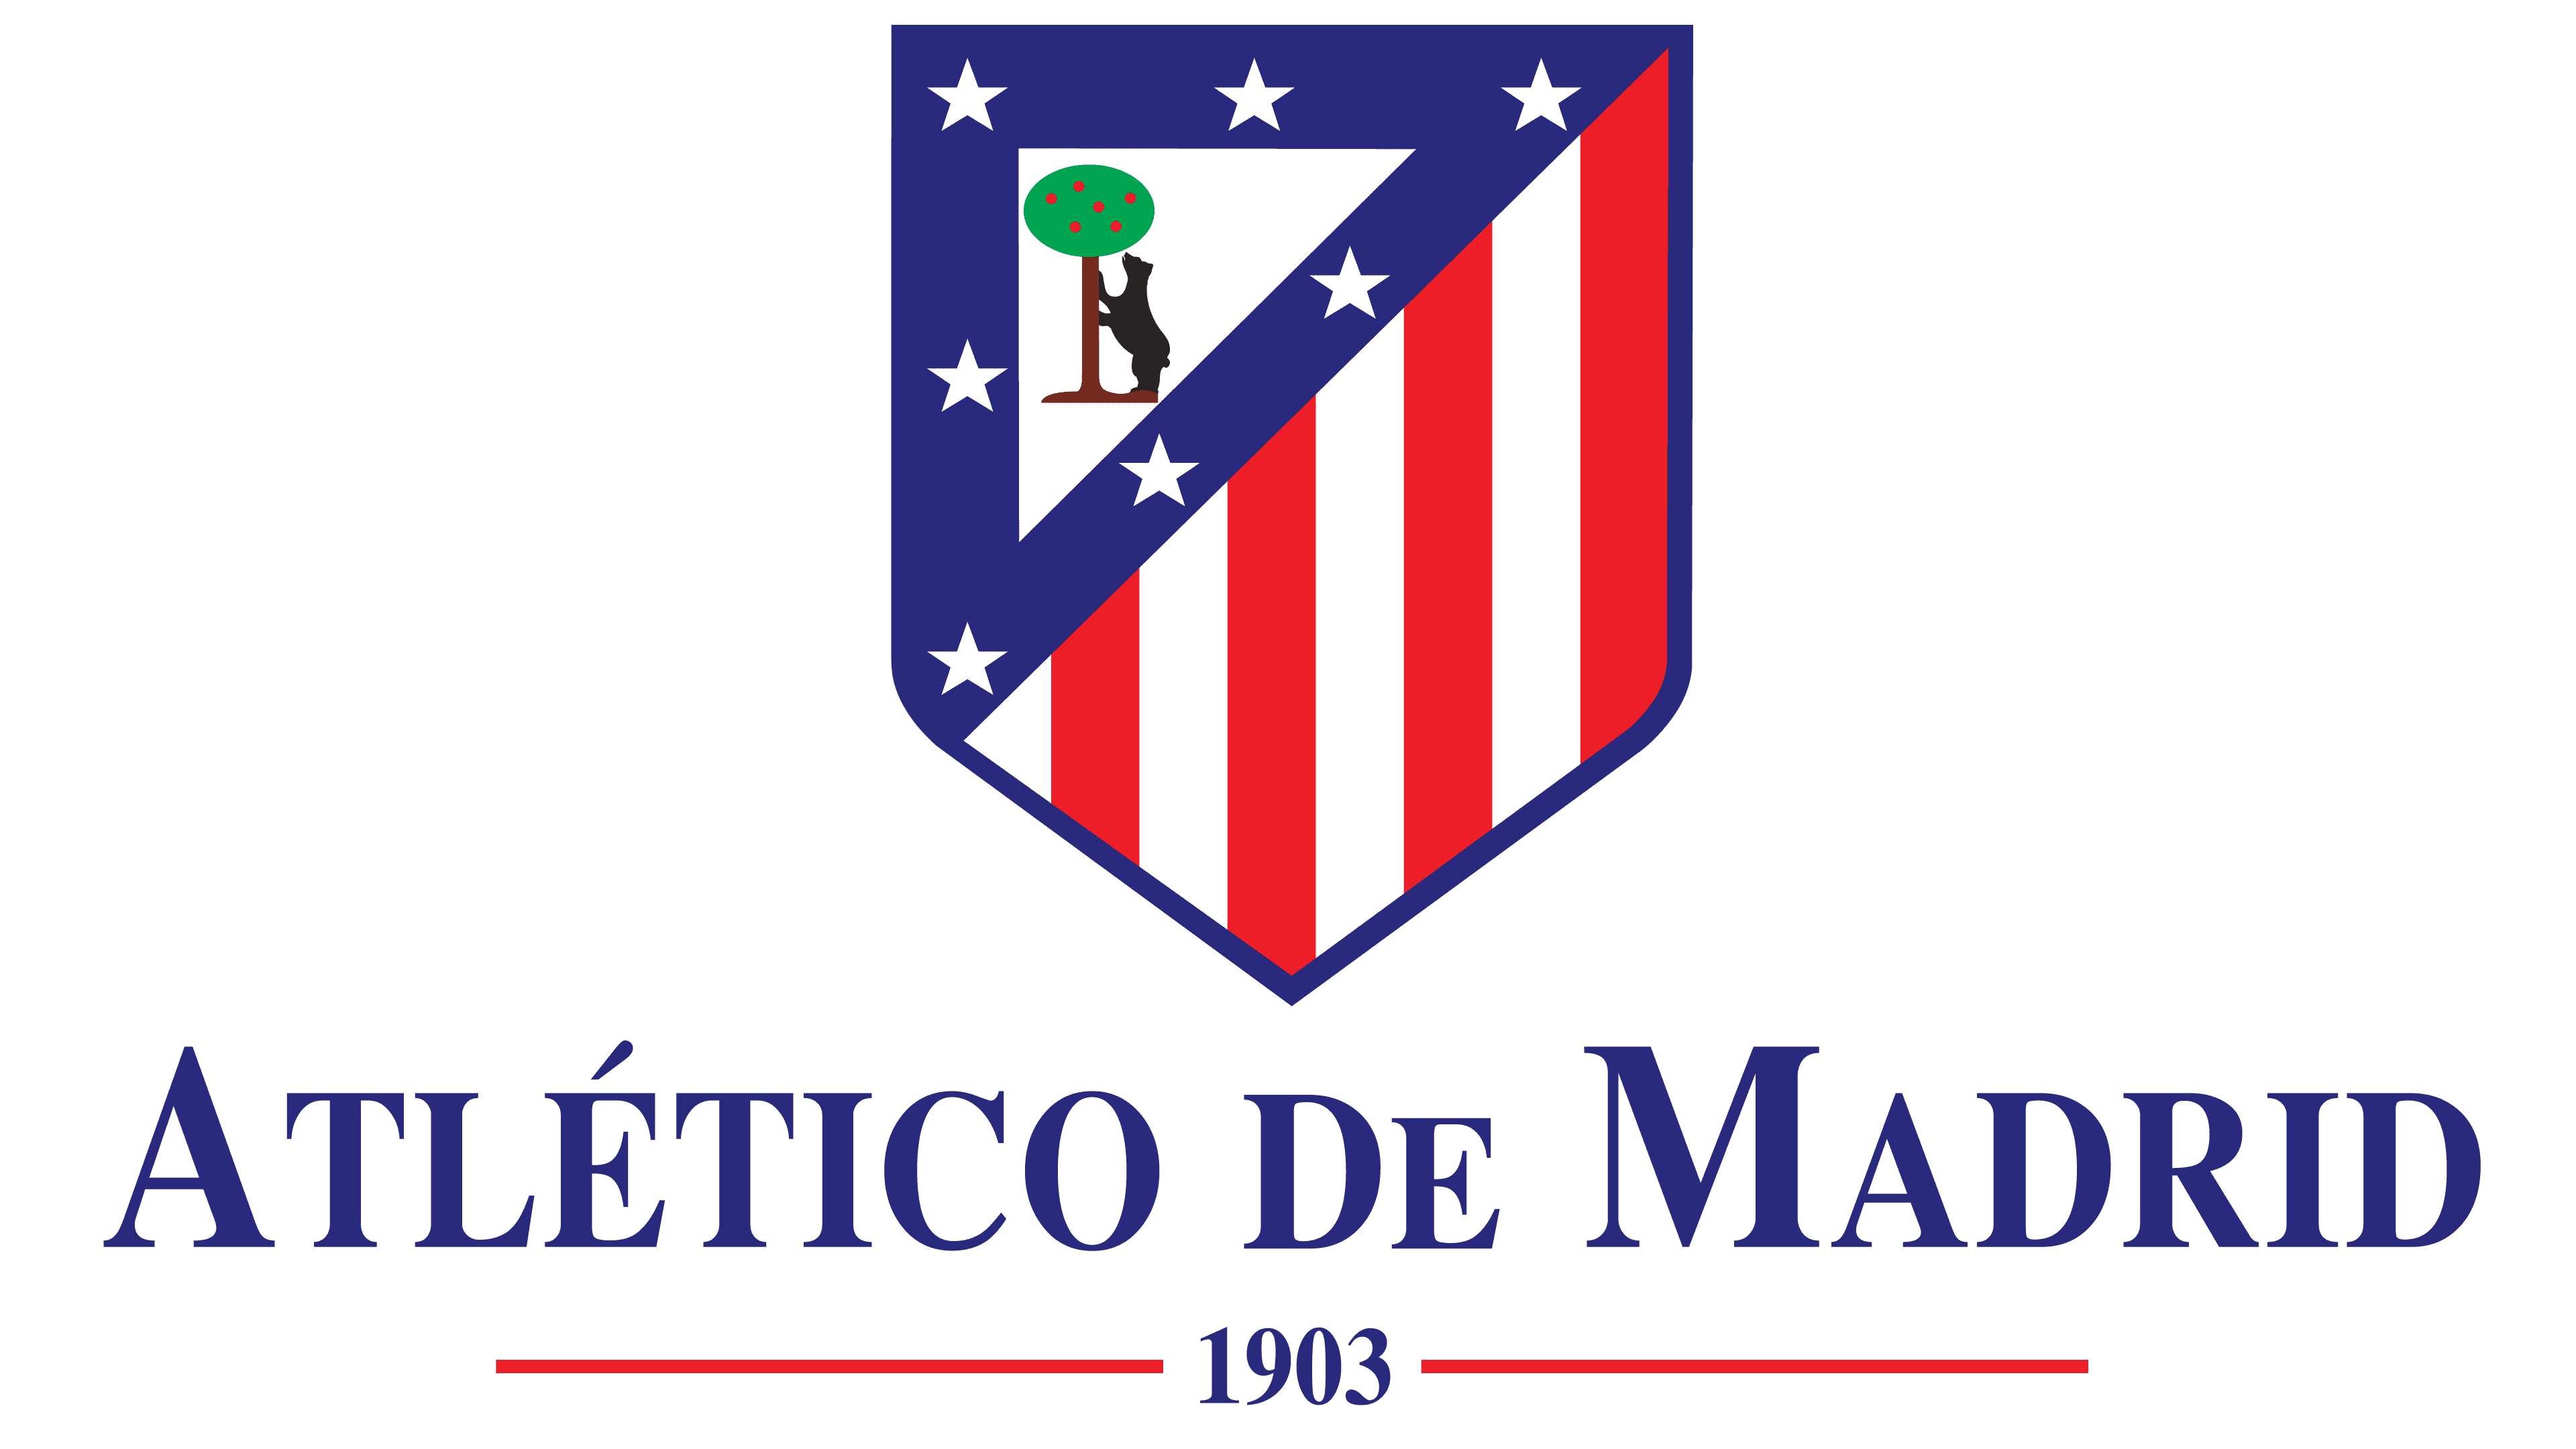 Atletico Madrid Logo The Most Famous Brands And Company Logos In The World